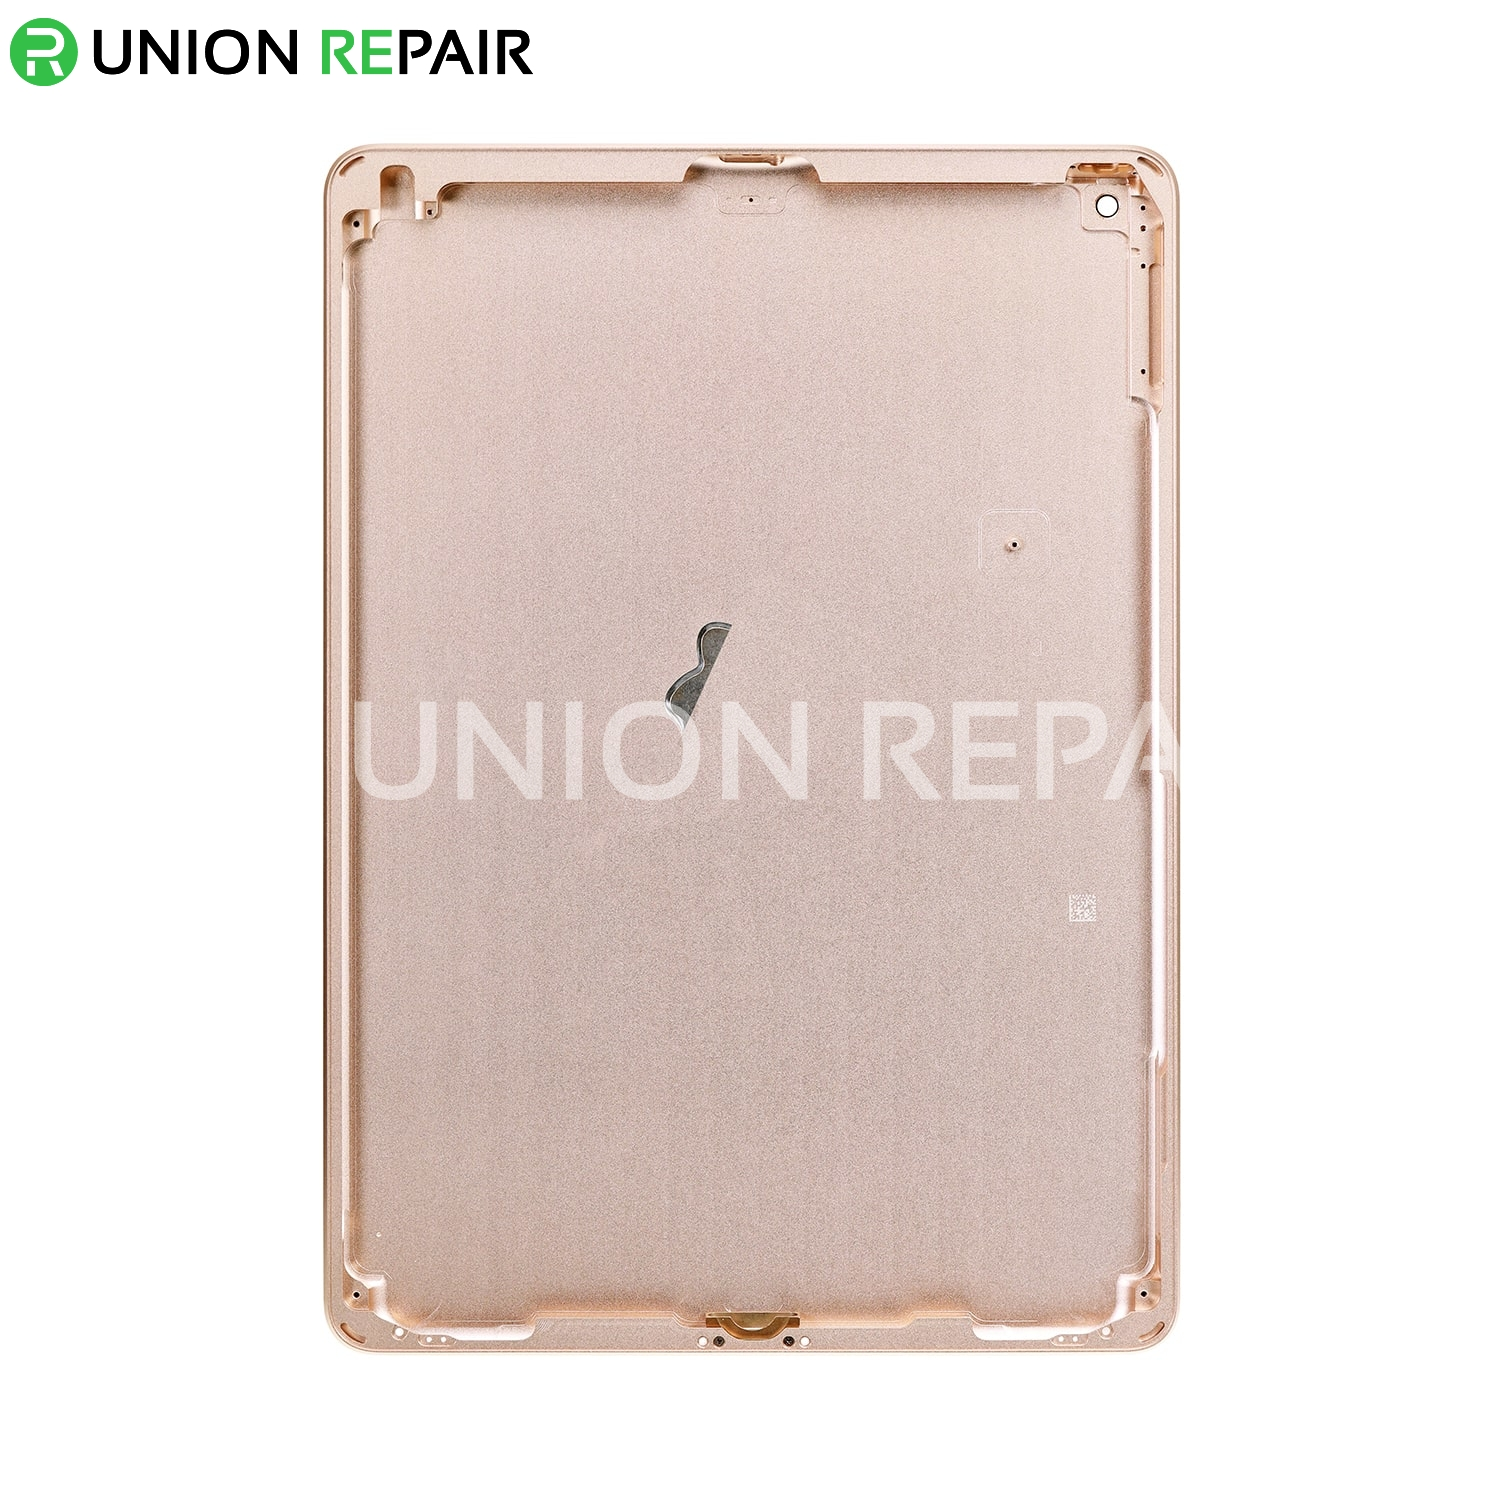 Replacement for iPad 5 WiFi Version Back Cover - Gold